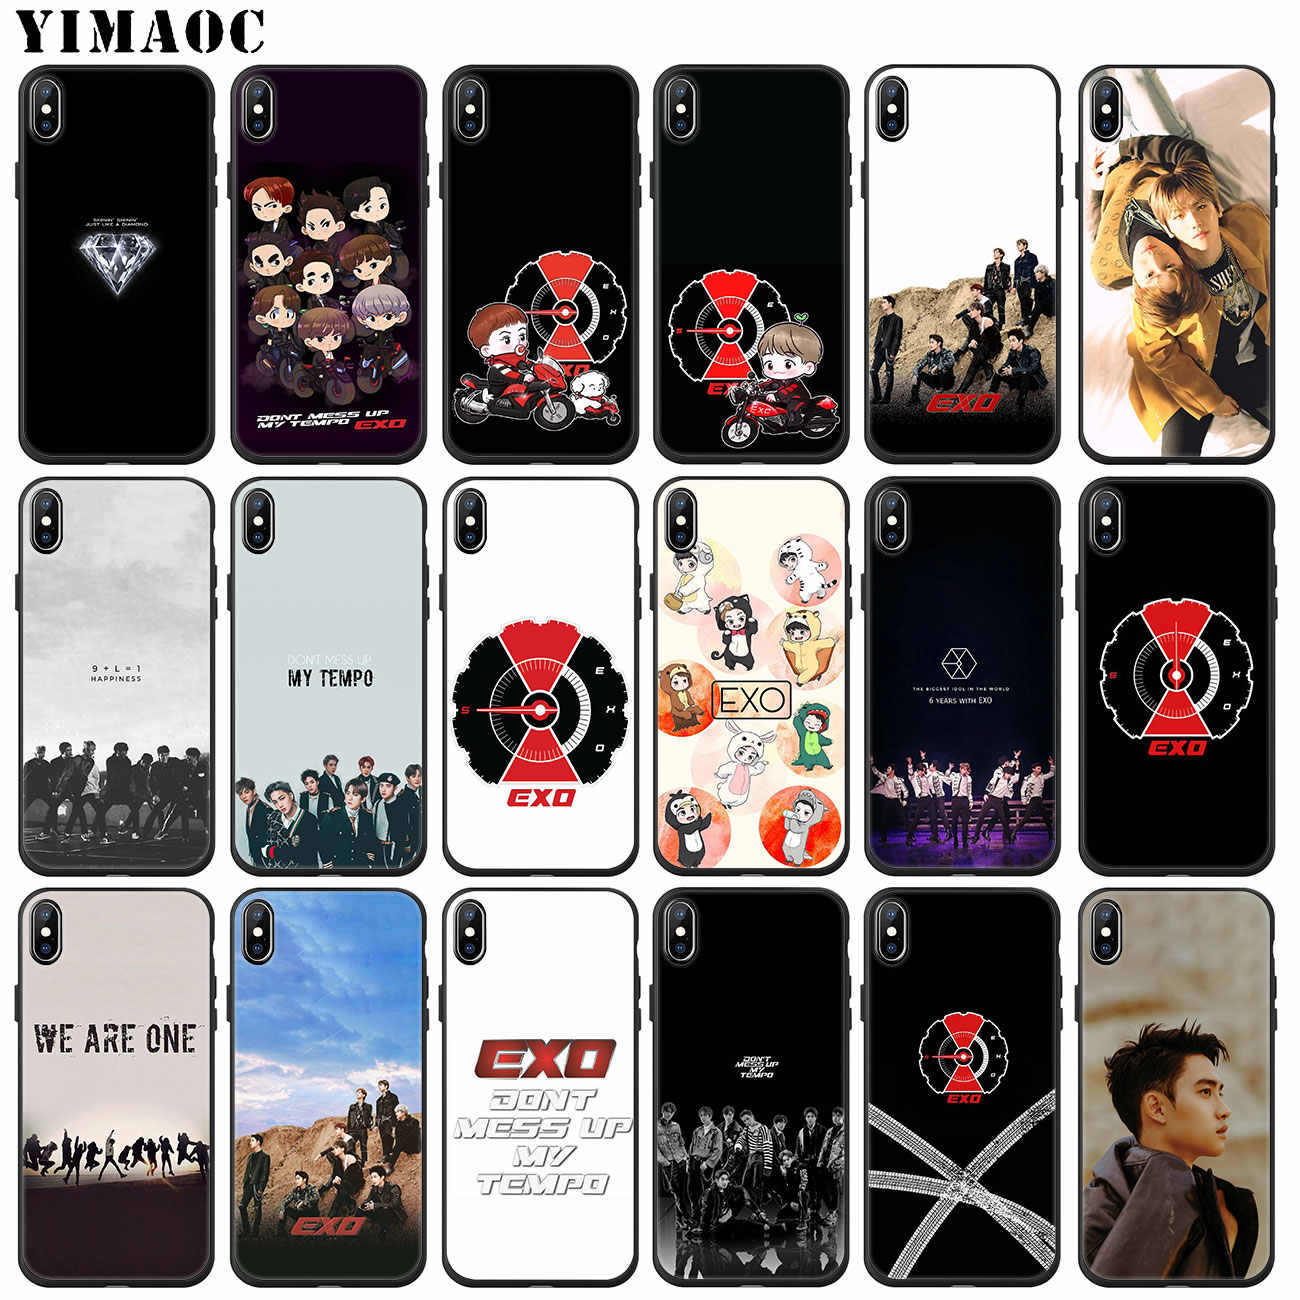 b09783610f9b7 YIMAOC EXO 5 Don't Mess Up My Tempo Soft Silicone Phone Case for iPhone XS  Max XR X 6 6S 7 8 Plus 5 5S SE 10 TPU Black Cover